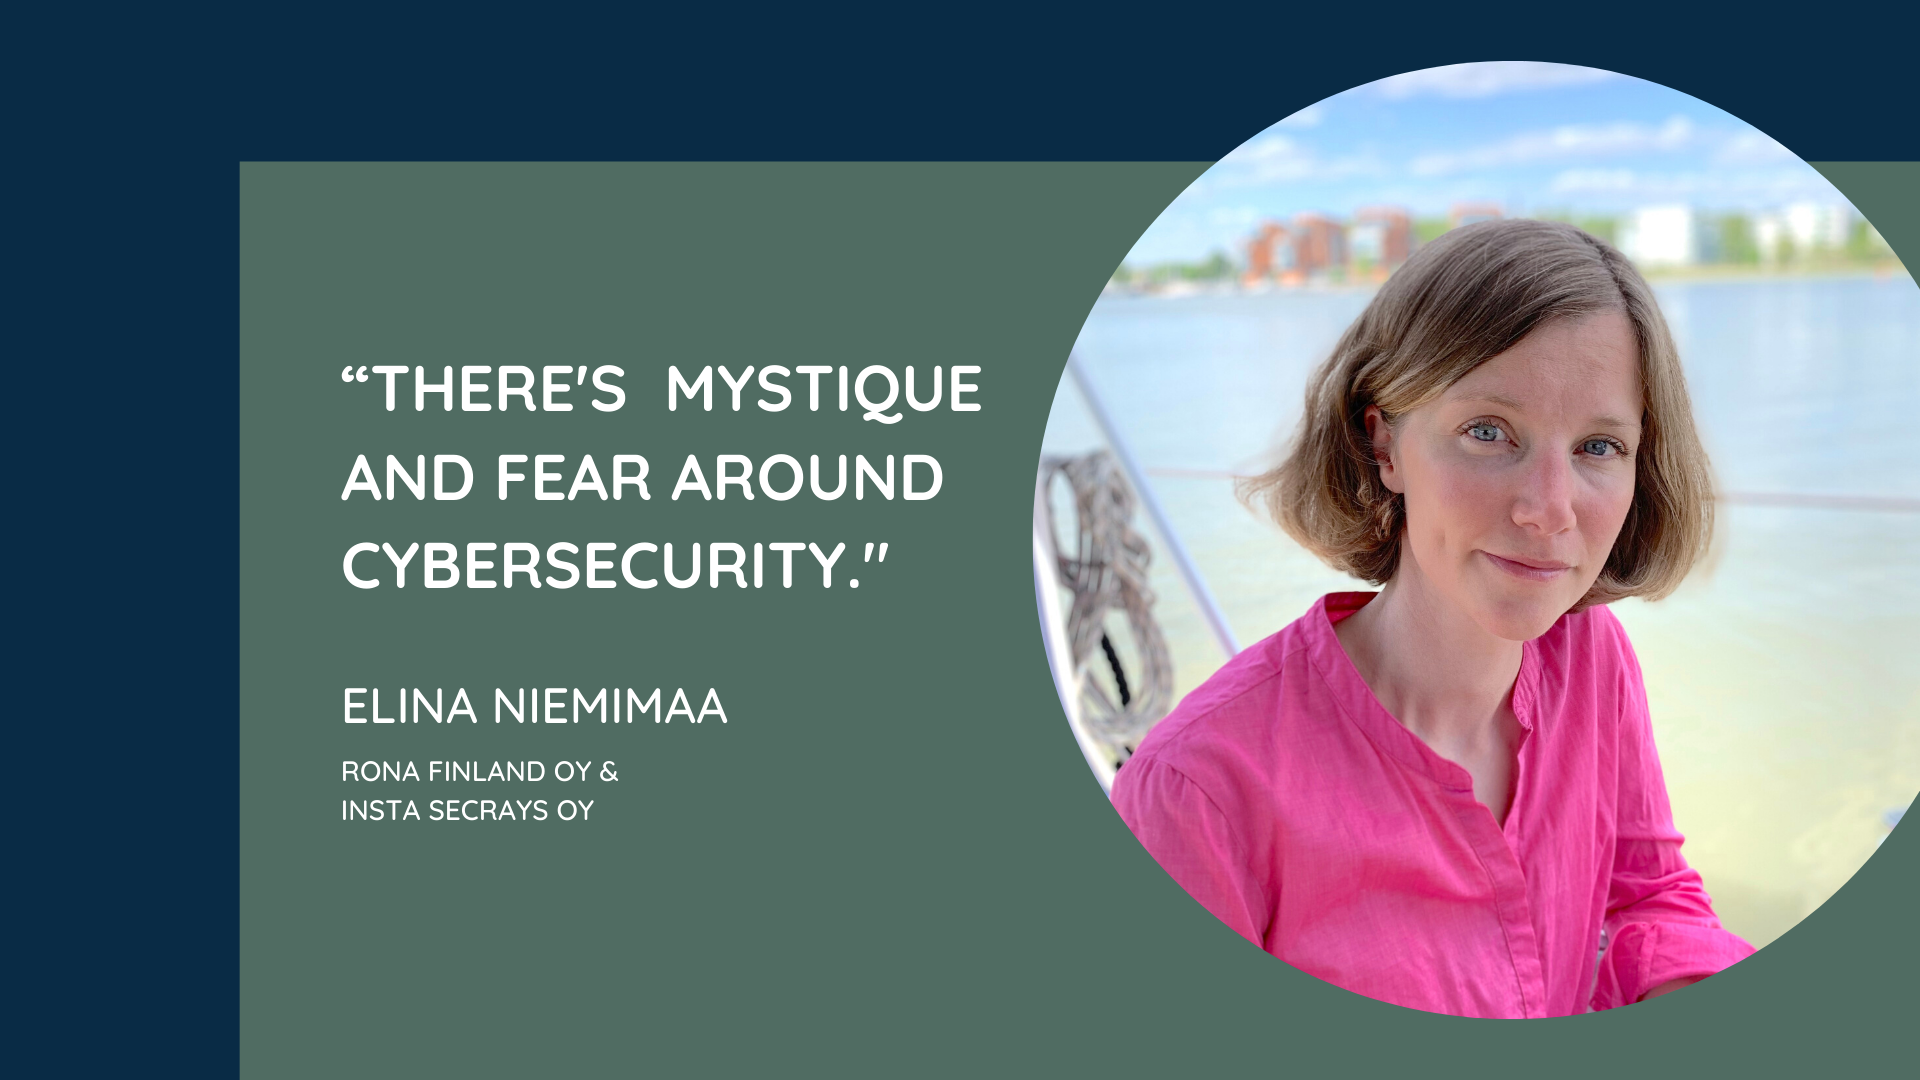 There's mystique and fear around cybersecurity.